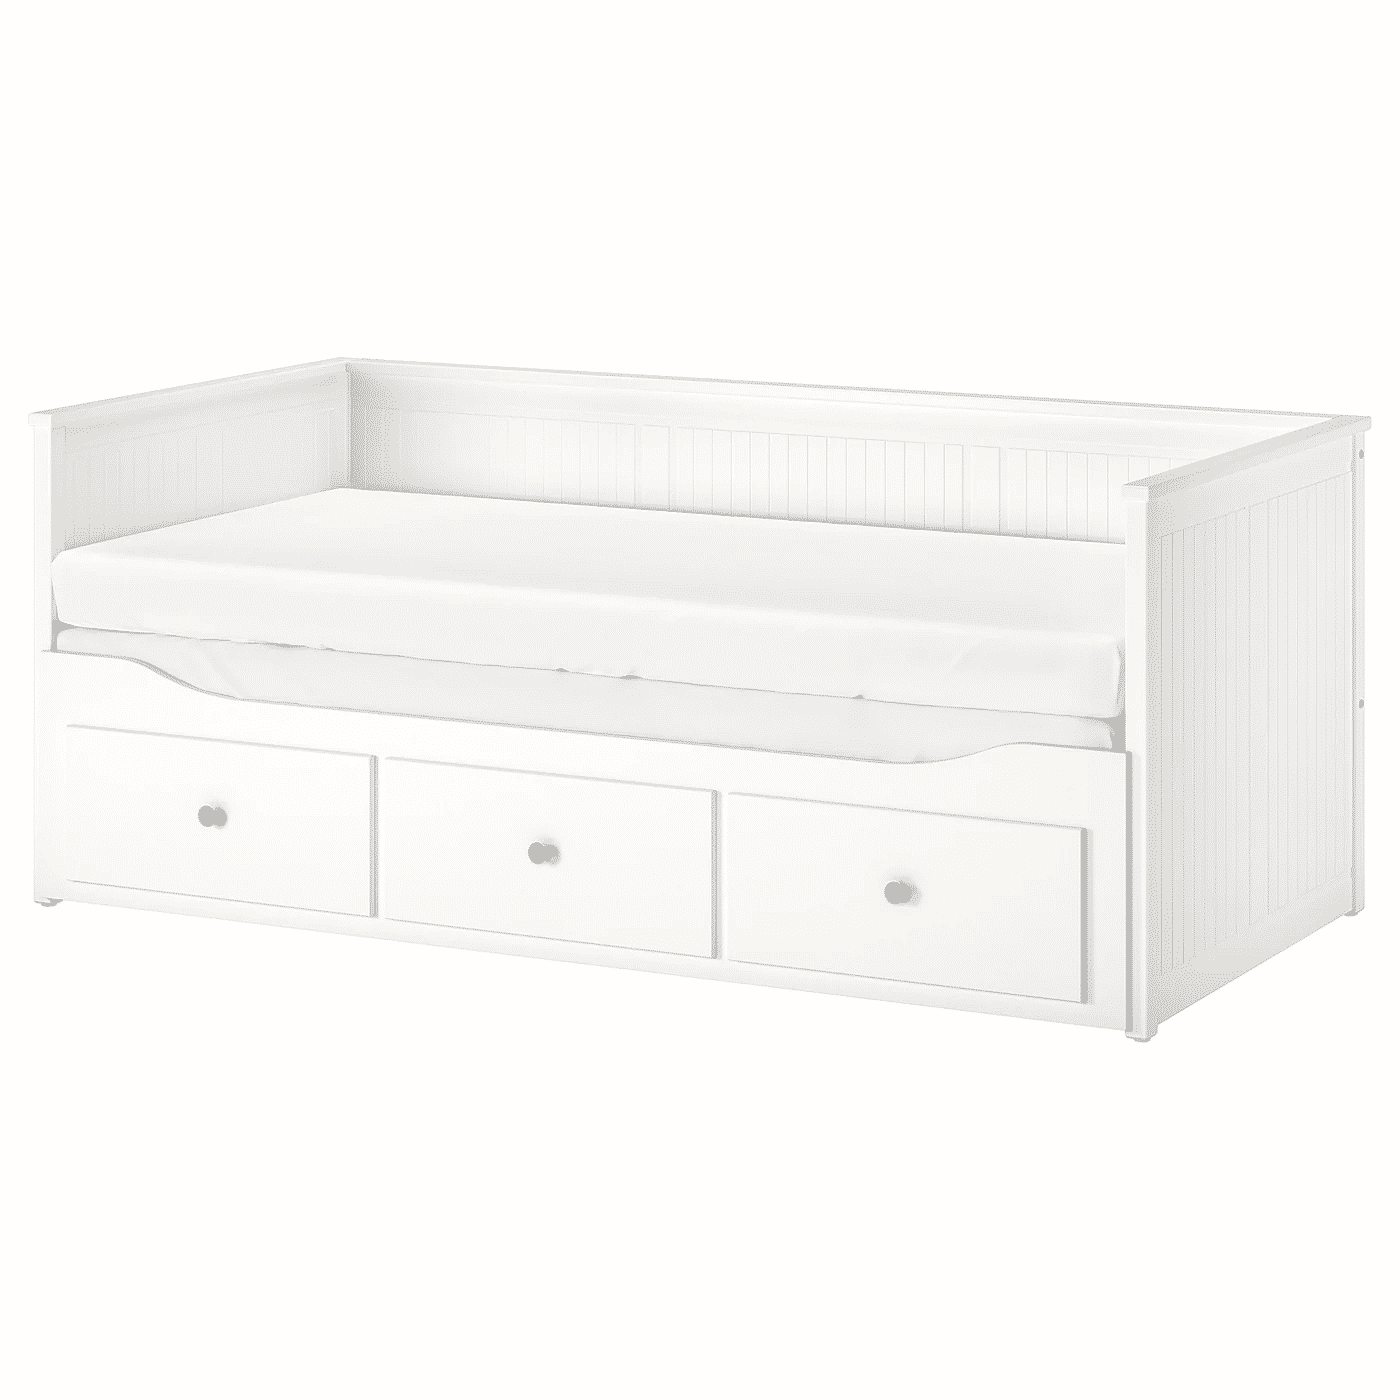 The Hemnes Daybed